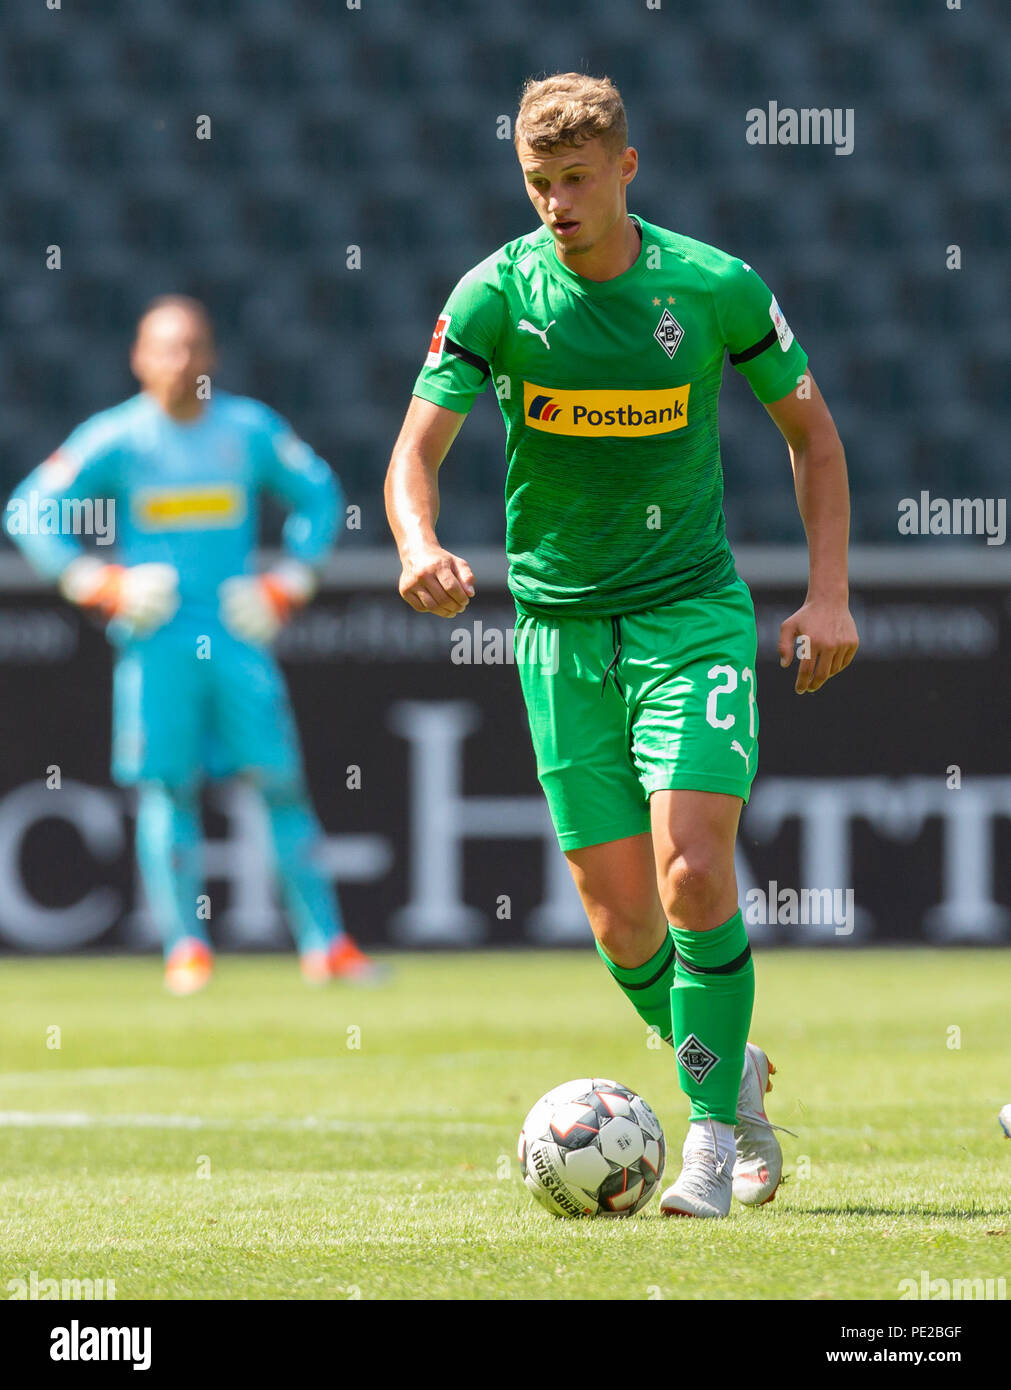 Moenchengladbach, Germany August 12 2018, friendly match, Borussia Moenchengladbach vs FC Wegberg-Beeck: Mickael Cuisance (BMG) in action.                Credit: Juergen Schwarz/Alamy Live News - Stock Image